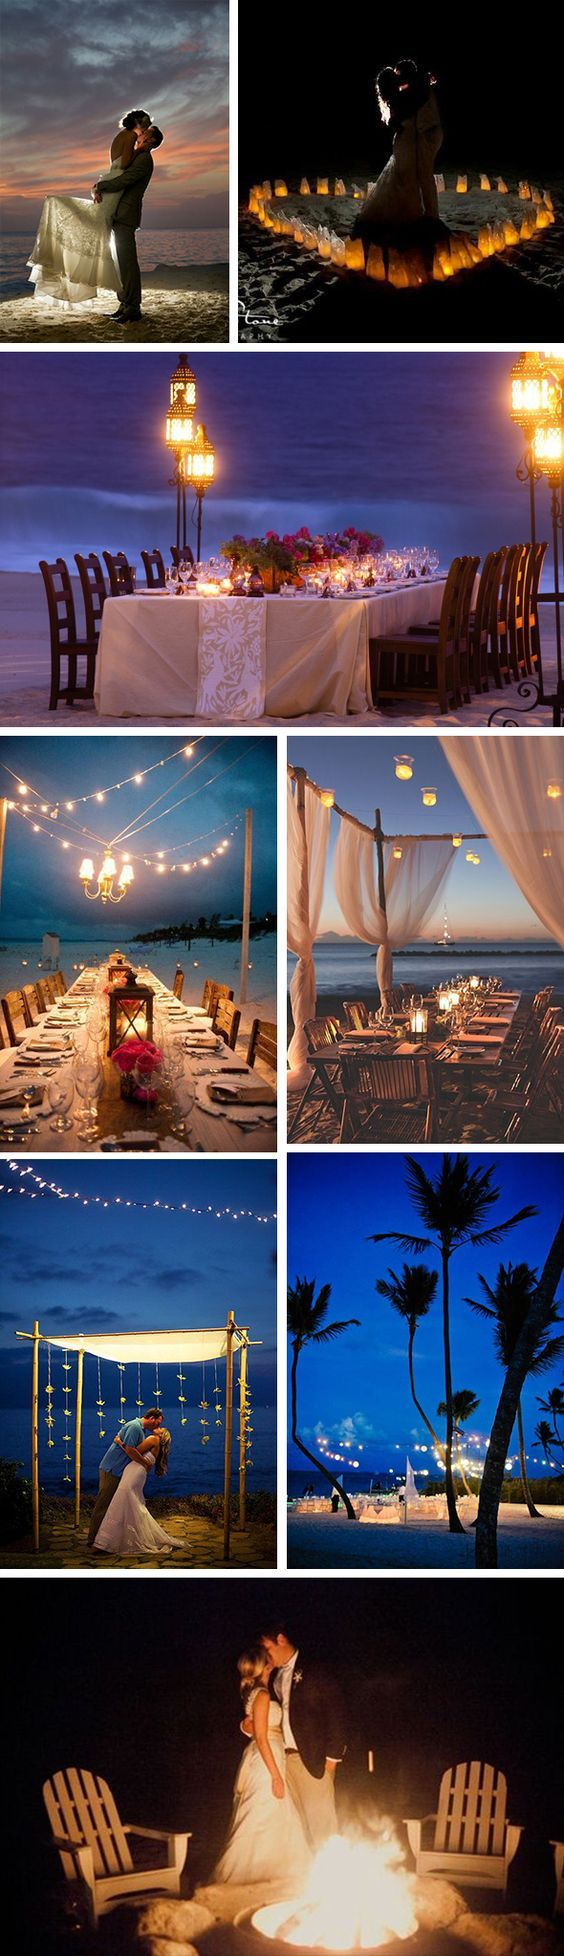 night beach weddings Beach Weddings at Night... destination wedding?